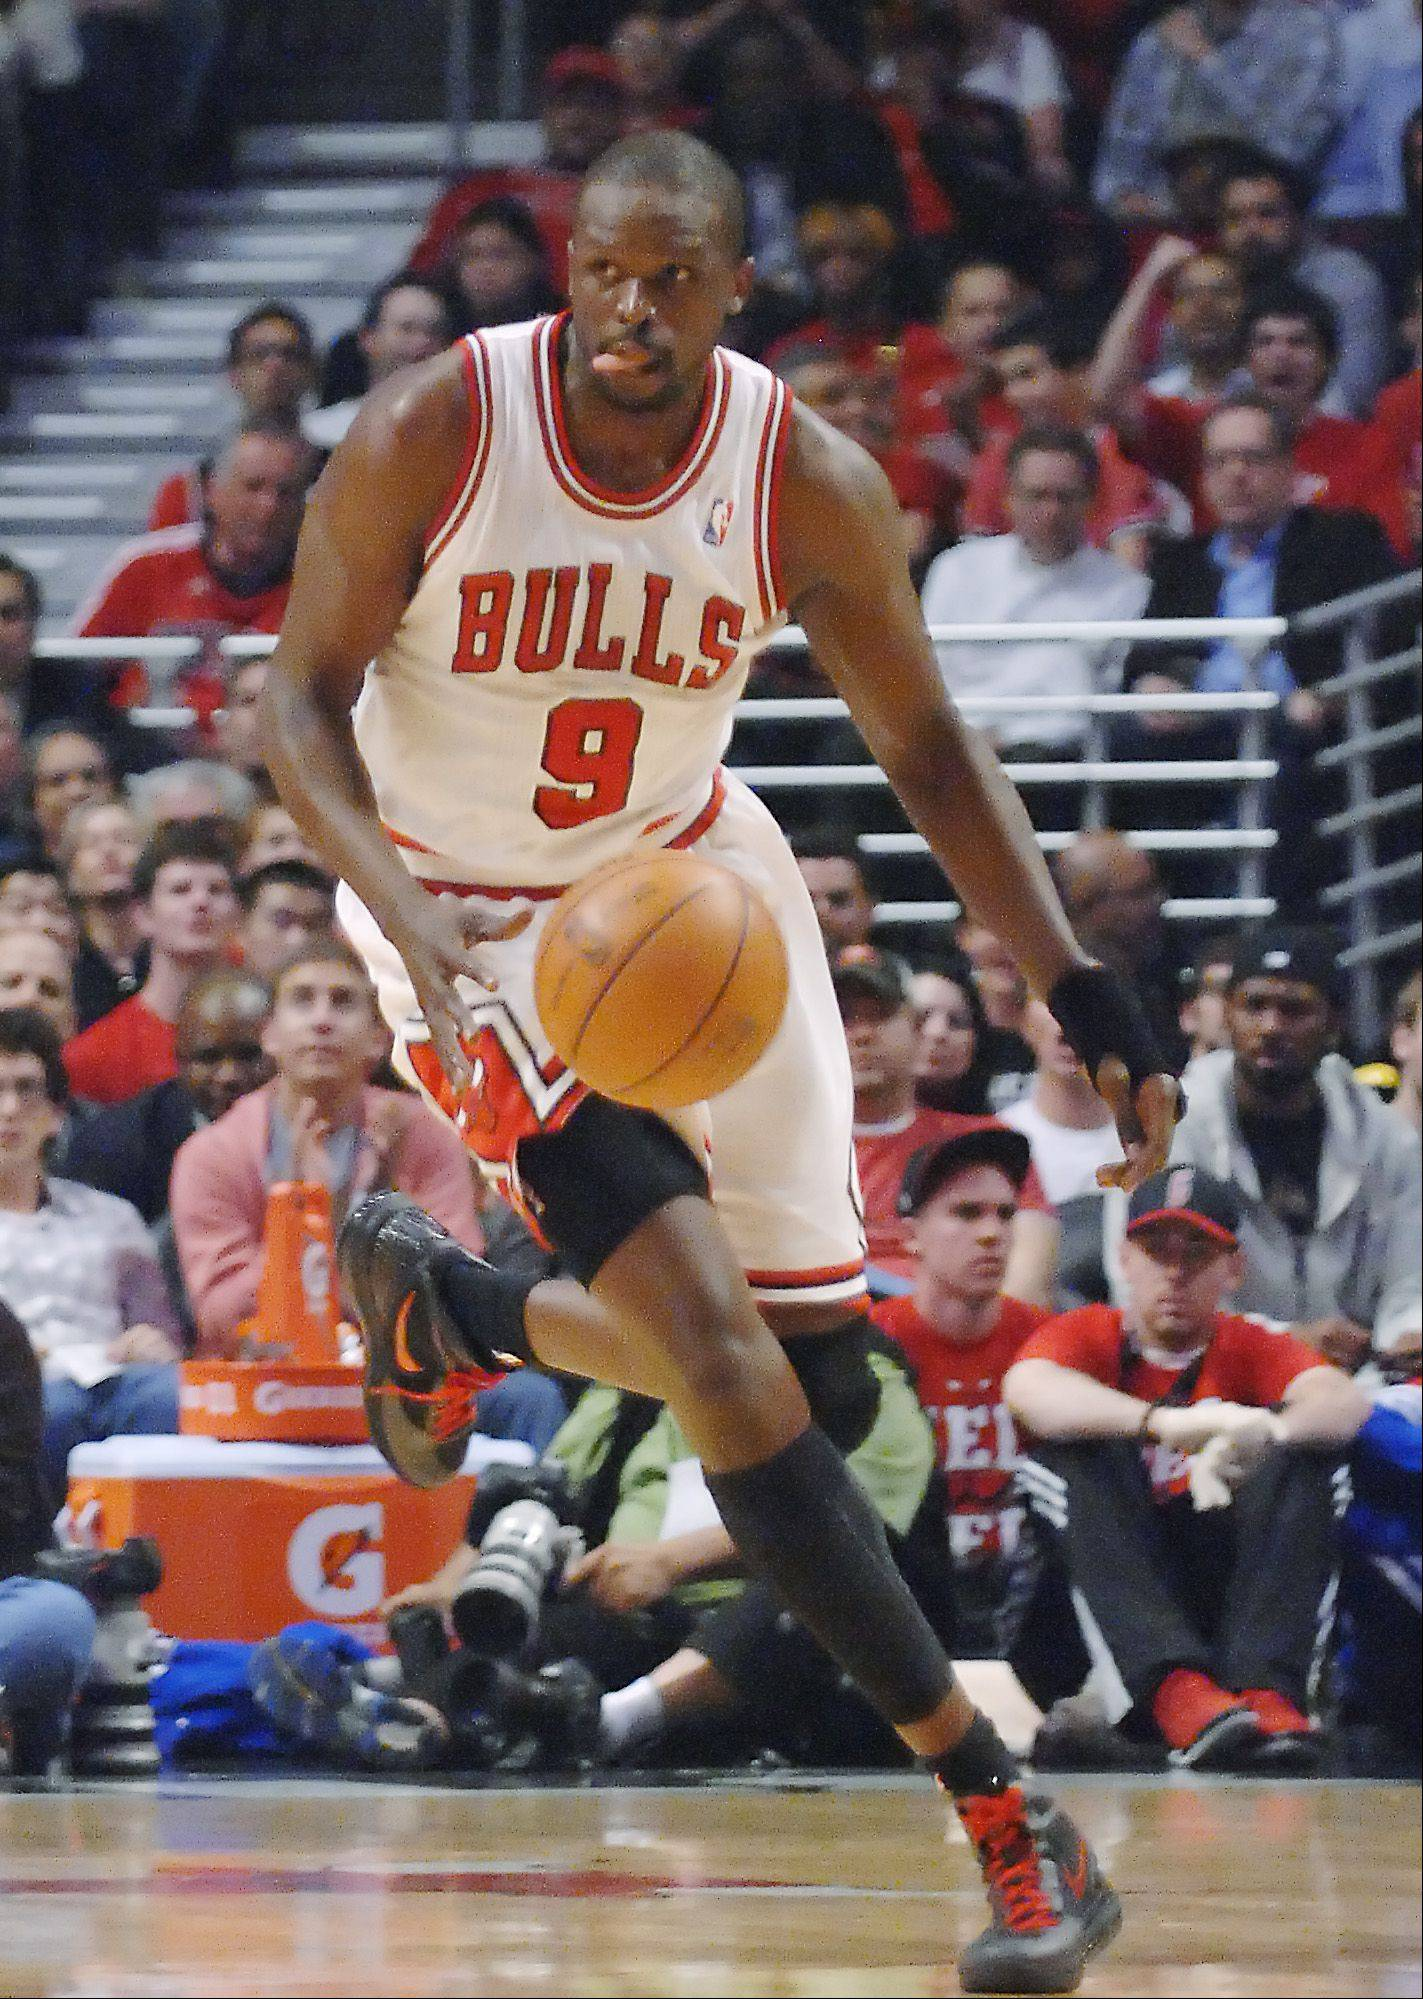 Bulls small forward Luol Deng looks for teammates as he drives up court Tuesday in the fifth game of the Eastern Conference first-round series at the United Center in Chicago.